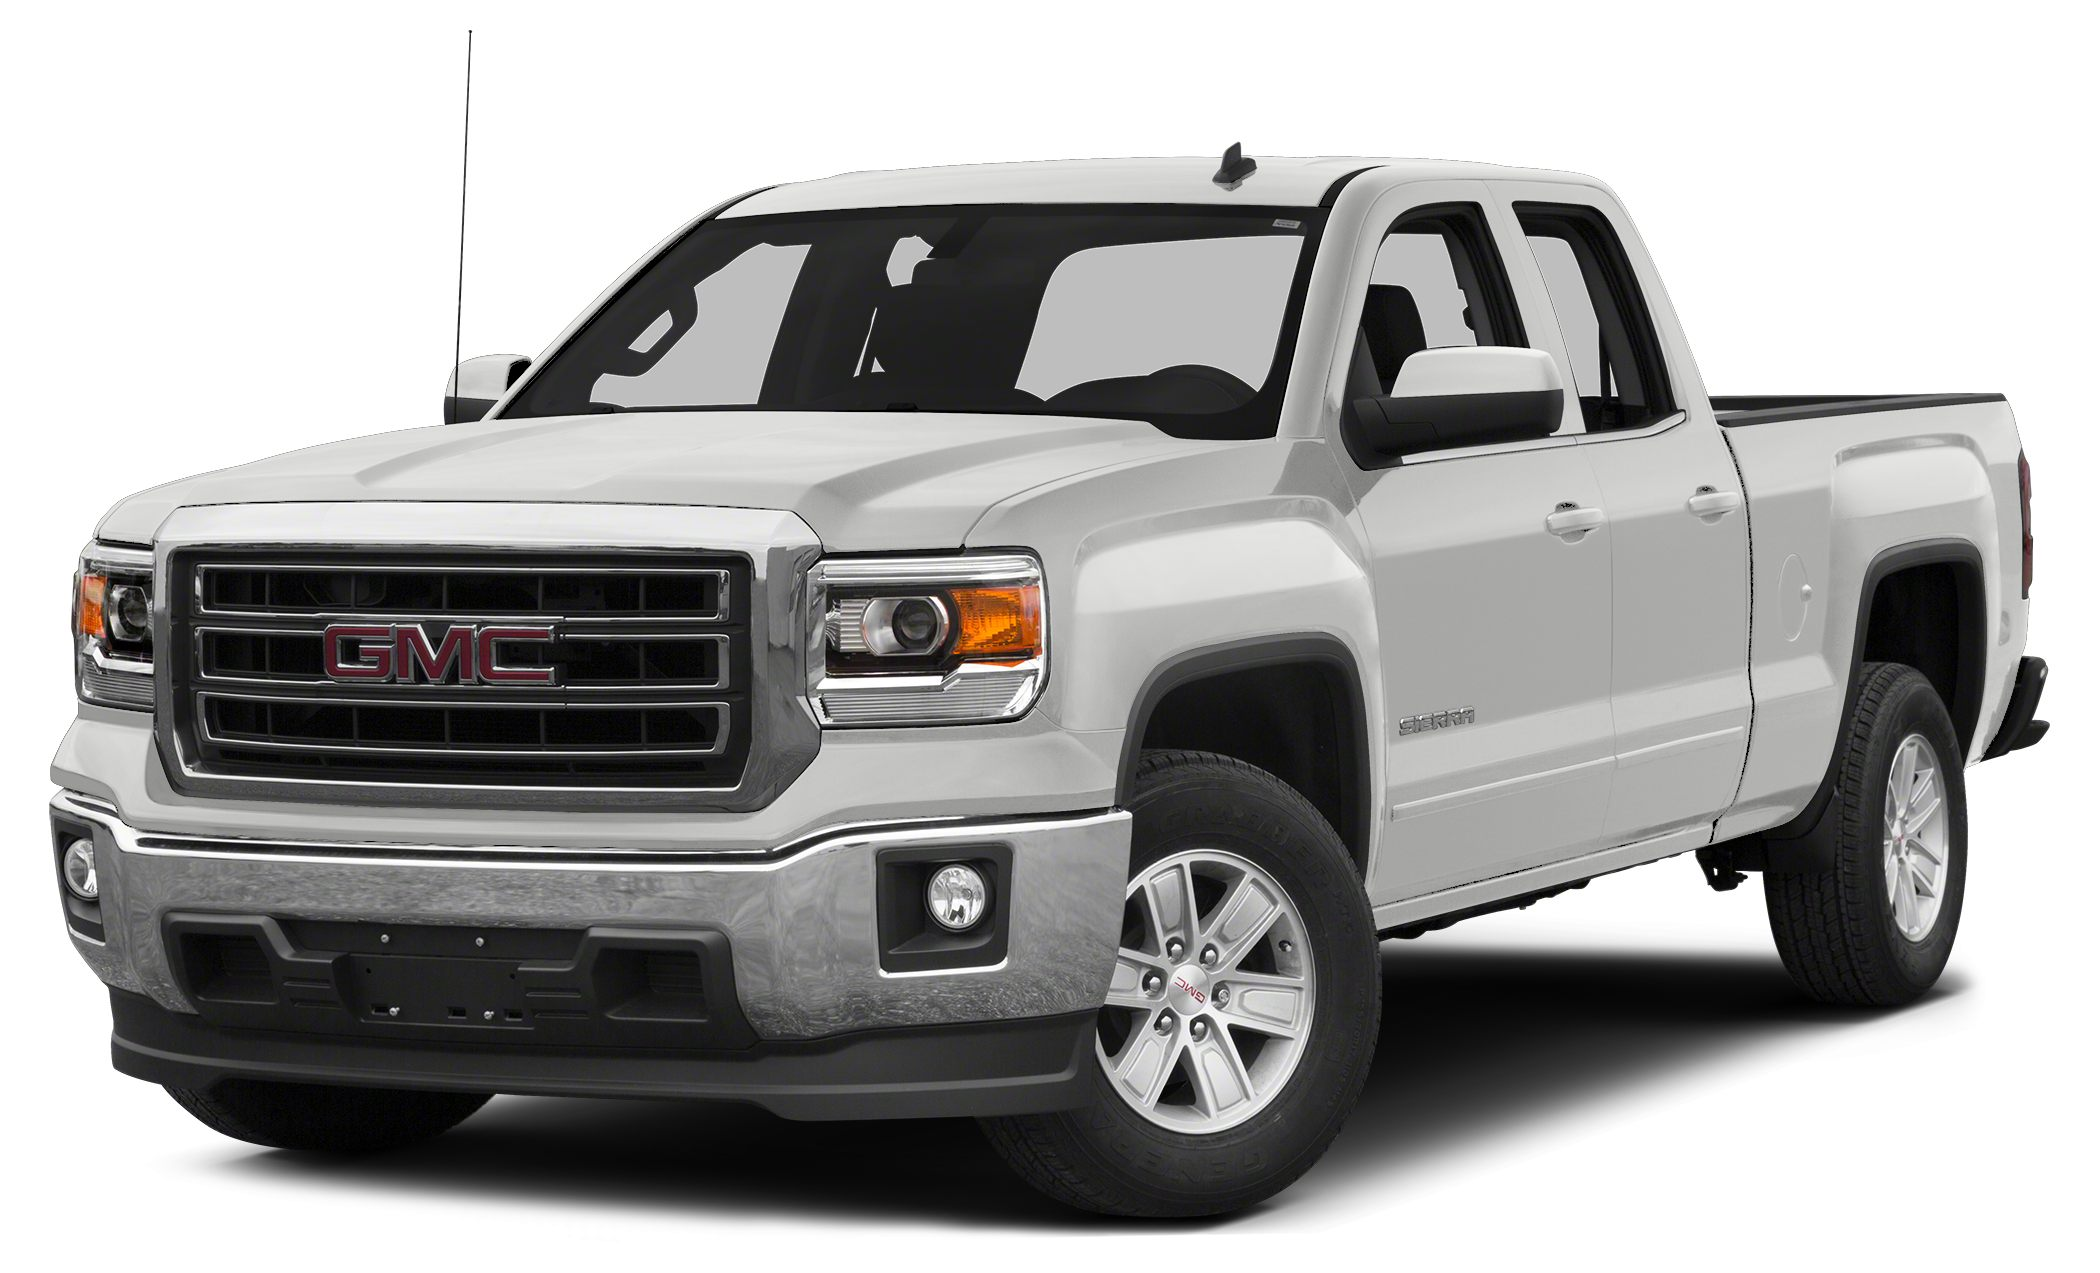 2015 GMC Sierra 1500 SLE Miles 7510Color Summit White Stock 296548A VIN 1GTR1UEH4FZ149574